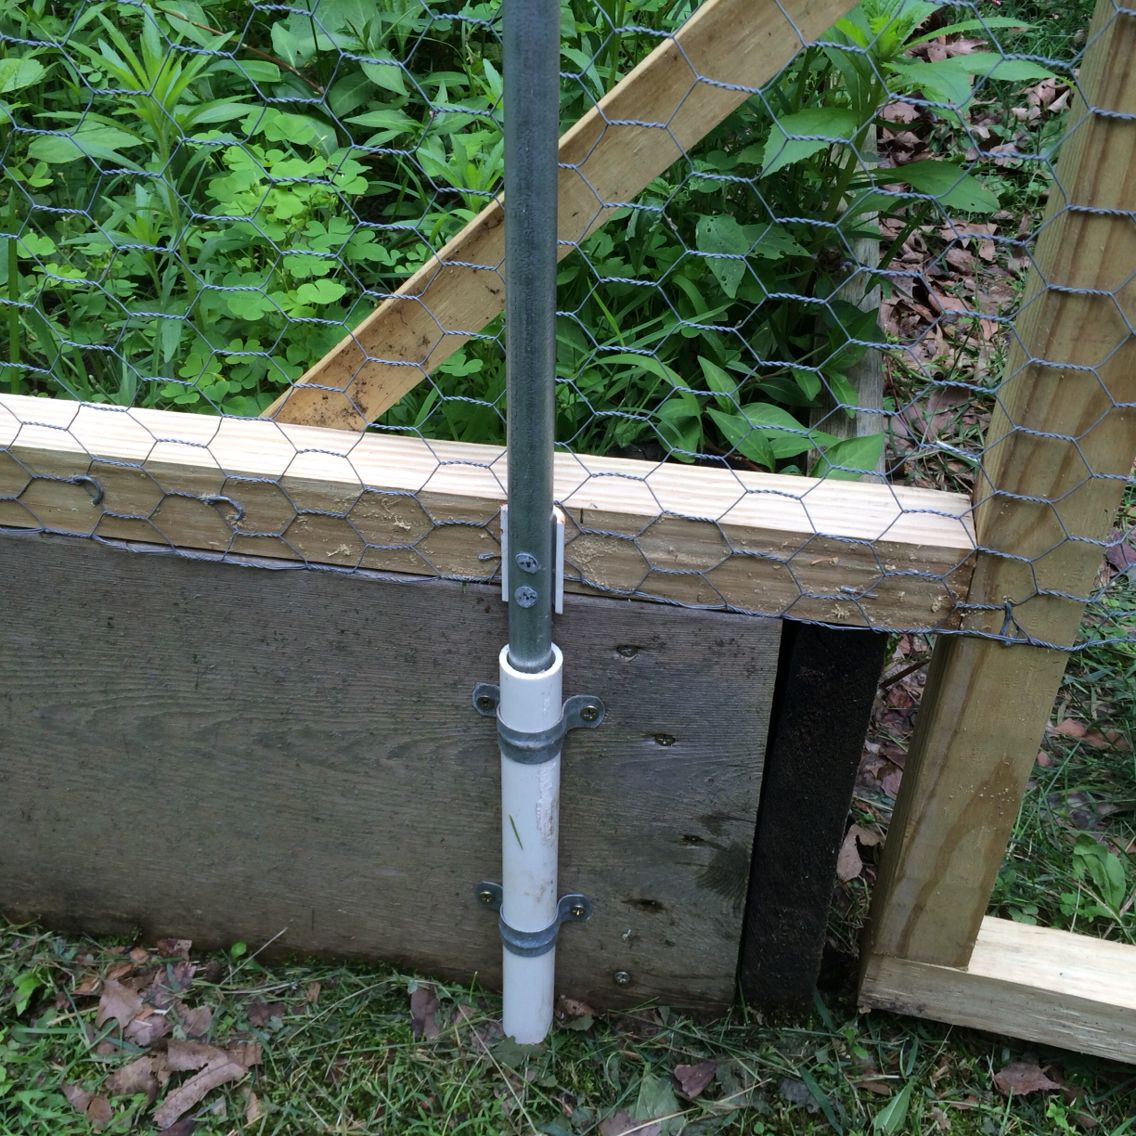 Exceptional Removable Garden Fence Constructed From Reused PVC Pipe, Electrical Conduit  And Chicken Wire From The